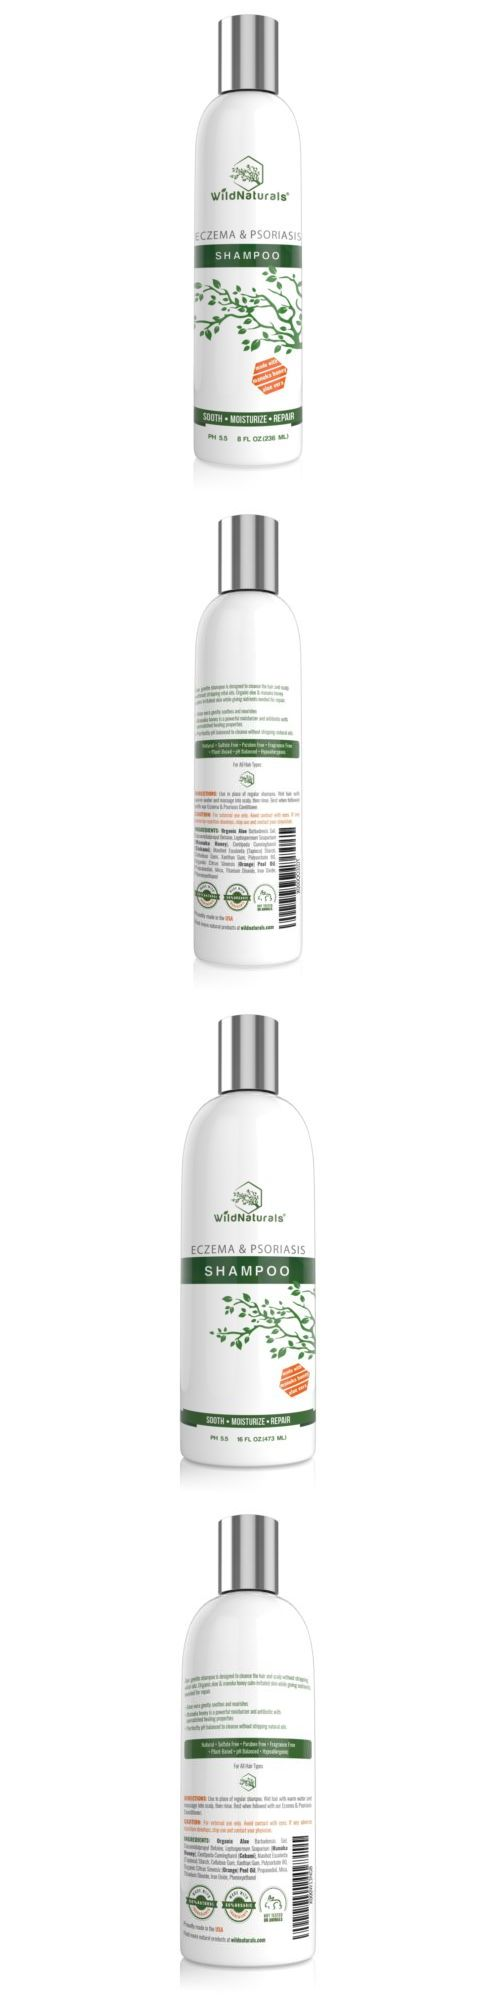 Medicated Hair Treatments: New Wild Naturals Eczema And Psoriasis Shampoo 8Oz 16Oz | Sooth Restore Your Hair -> BUY IT NOW ONLY: $99.95 on eBay!